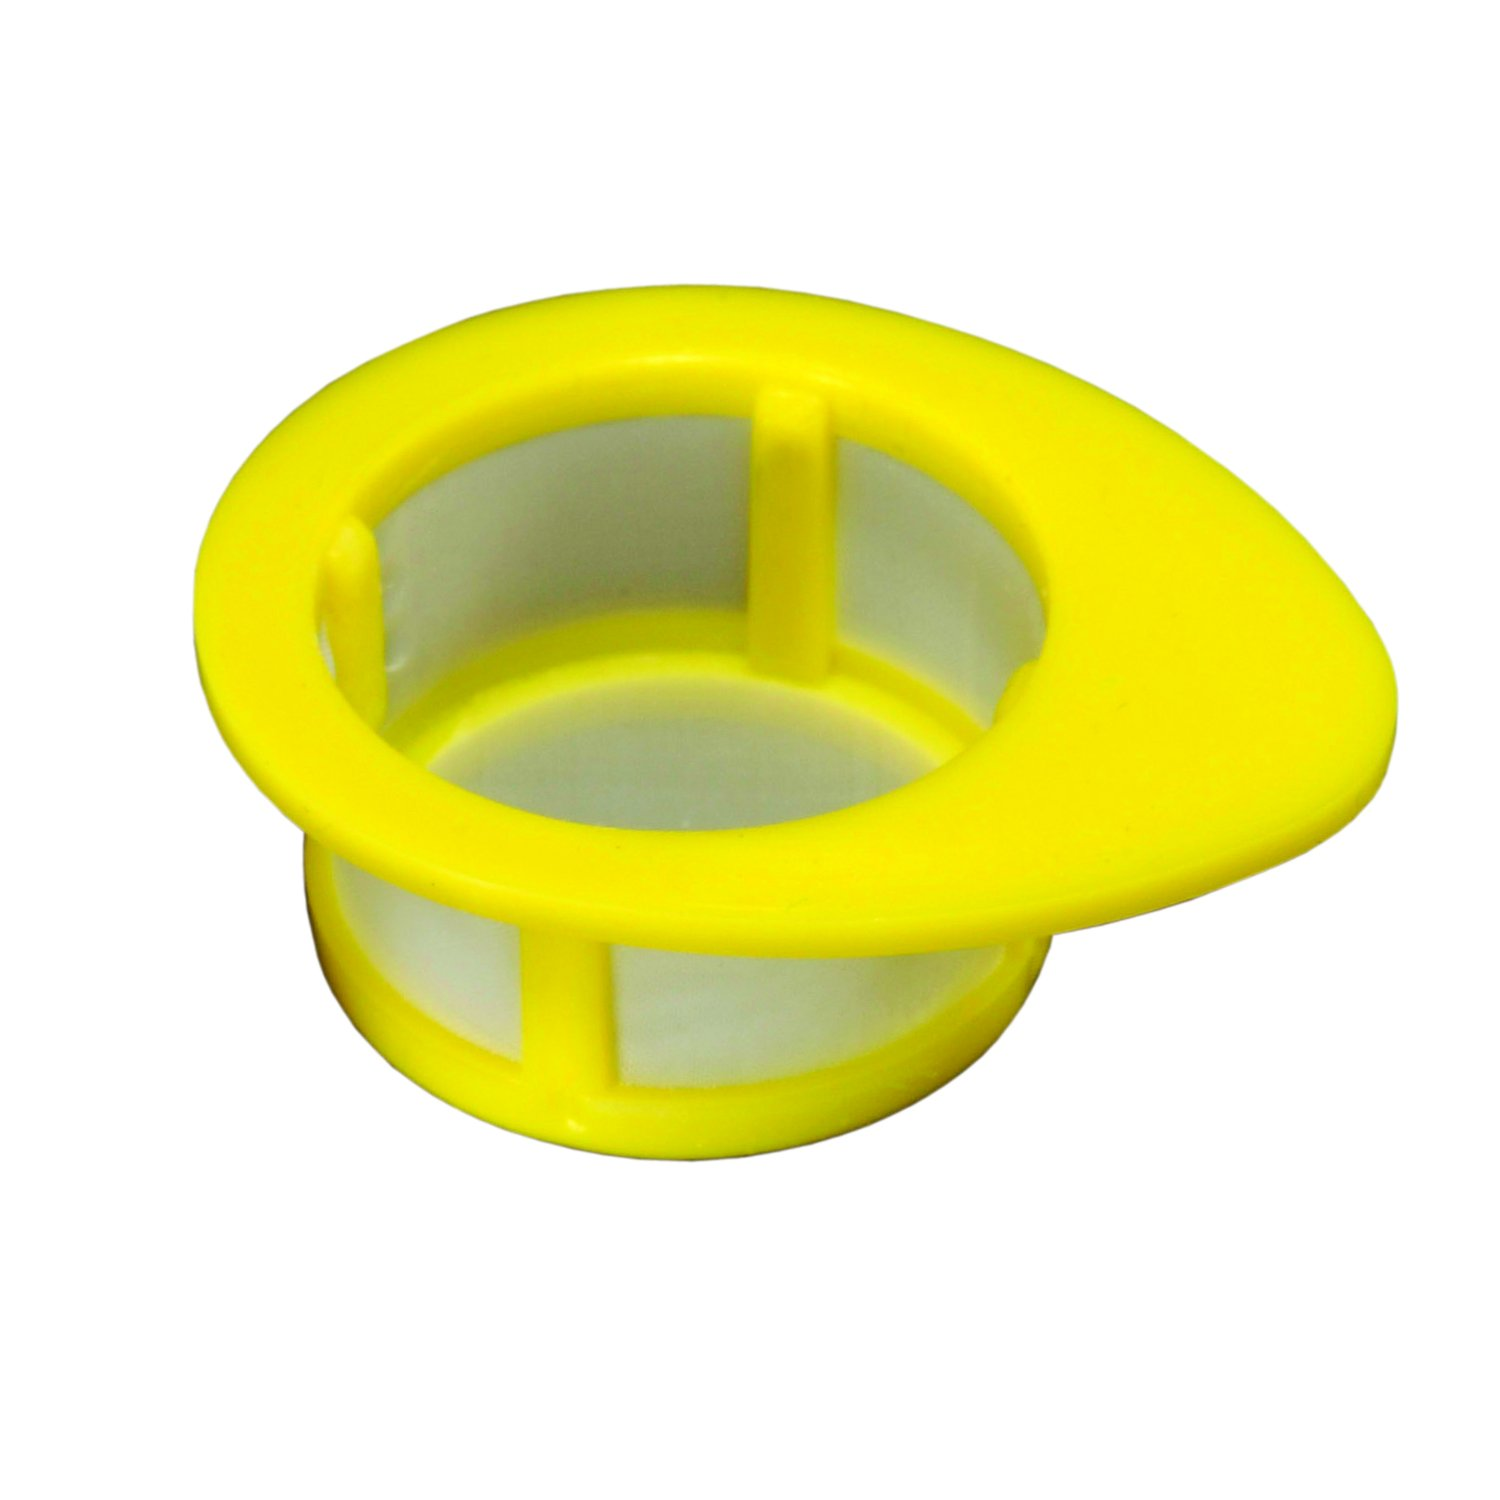 Argos Technologies CS100 Cell Strainers 100 micrometer Pore Size Individually Wrapped Sterile Yellow Case of 50